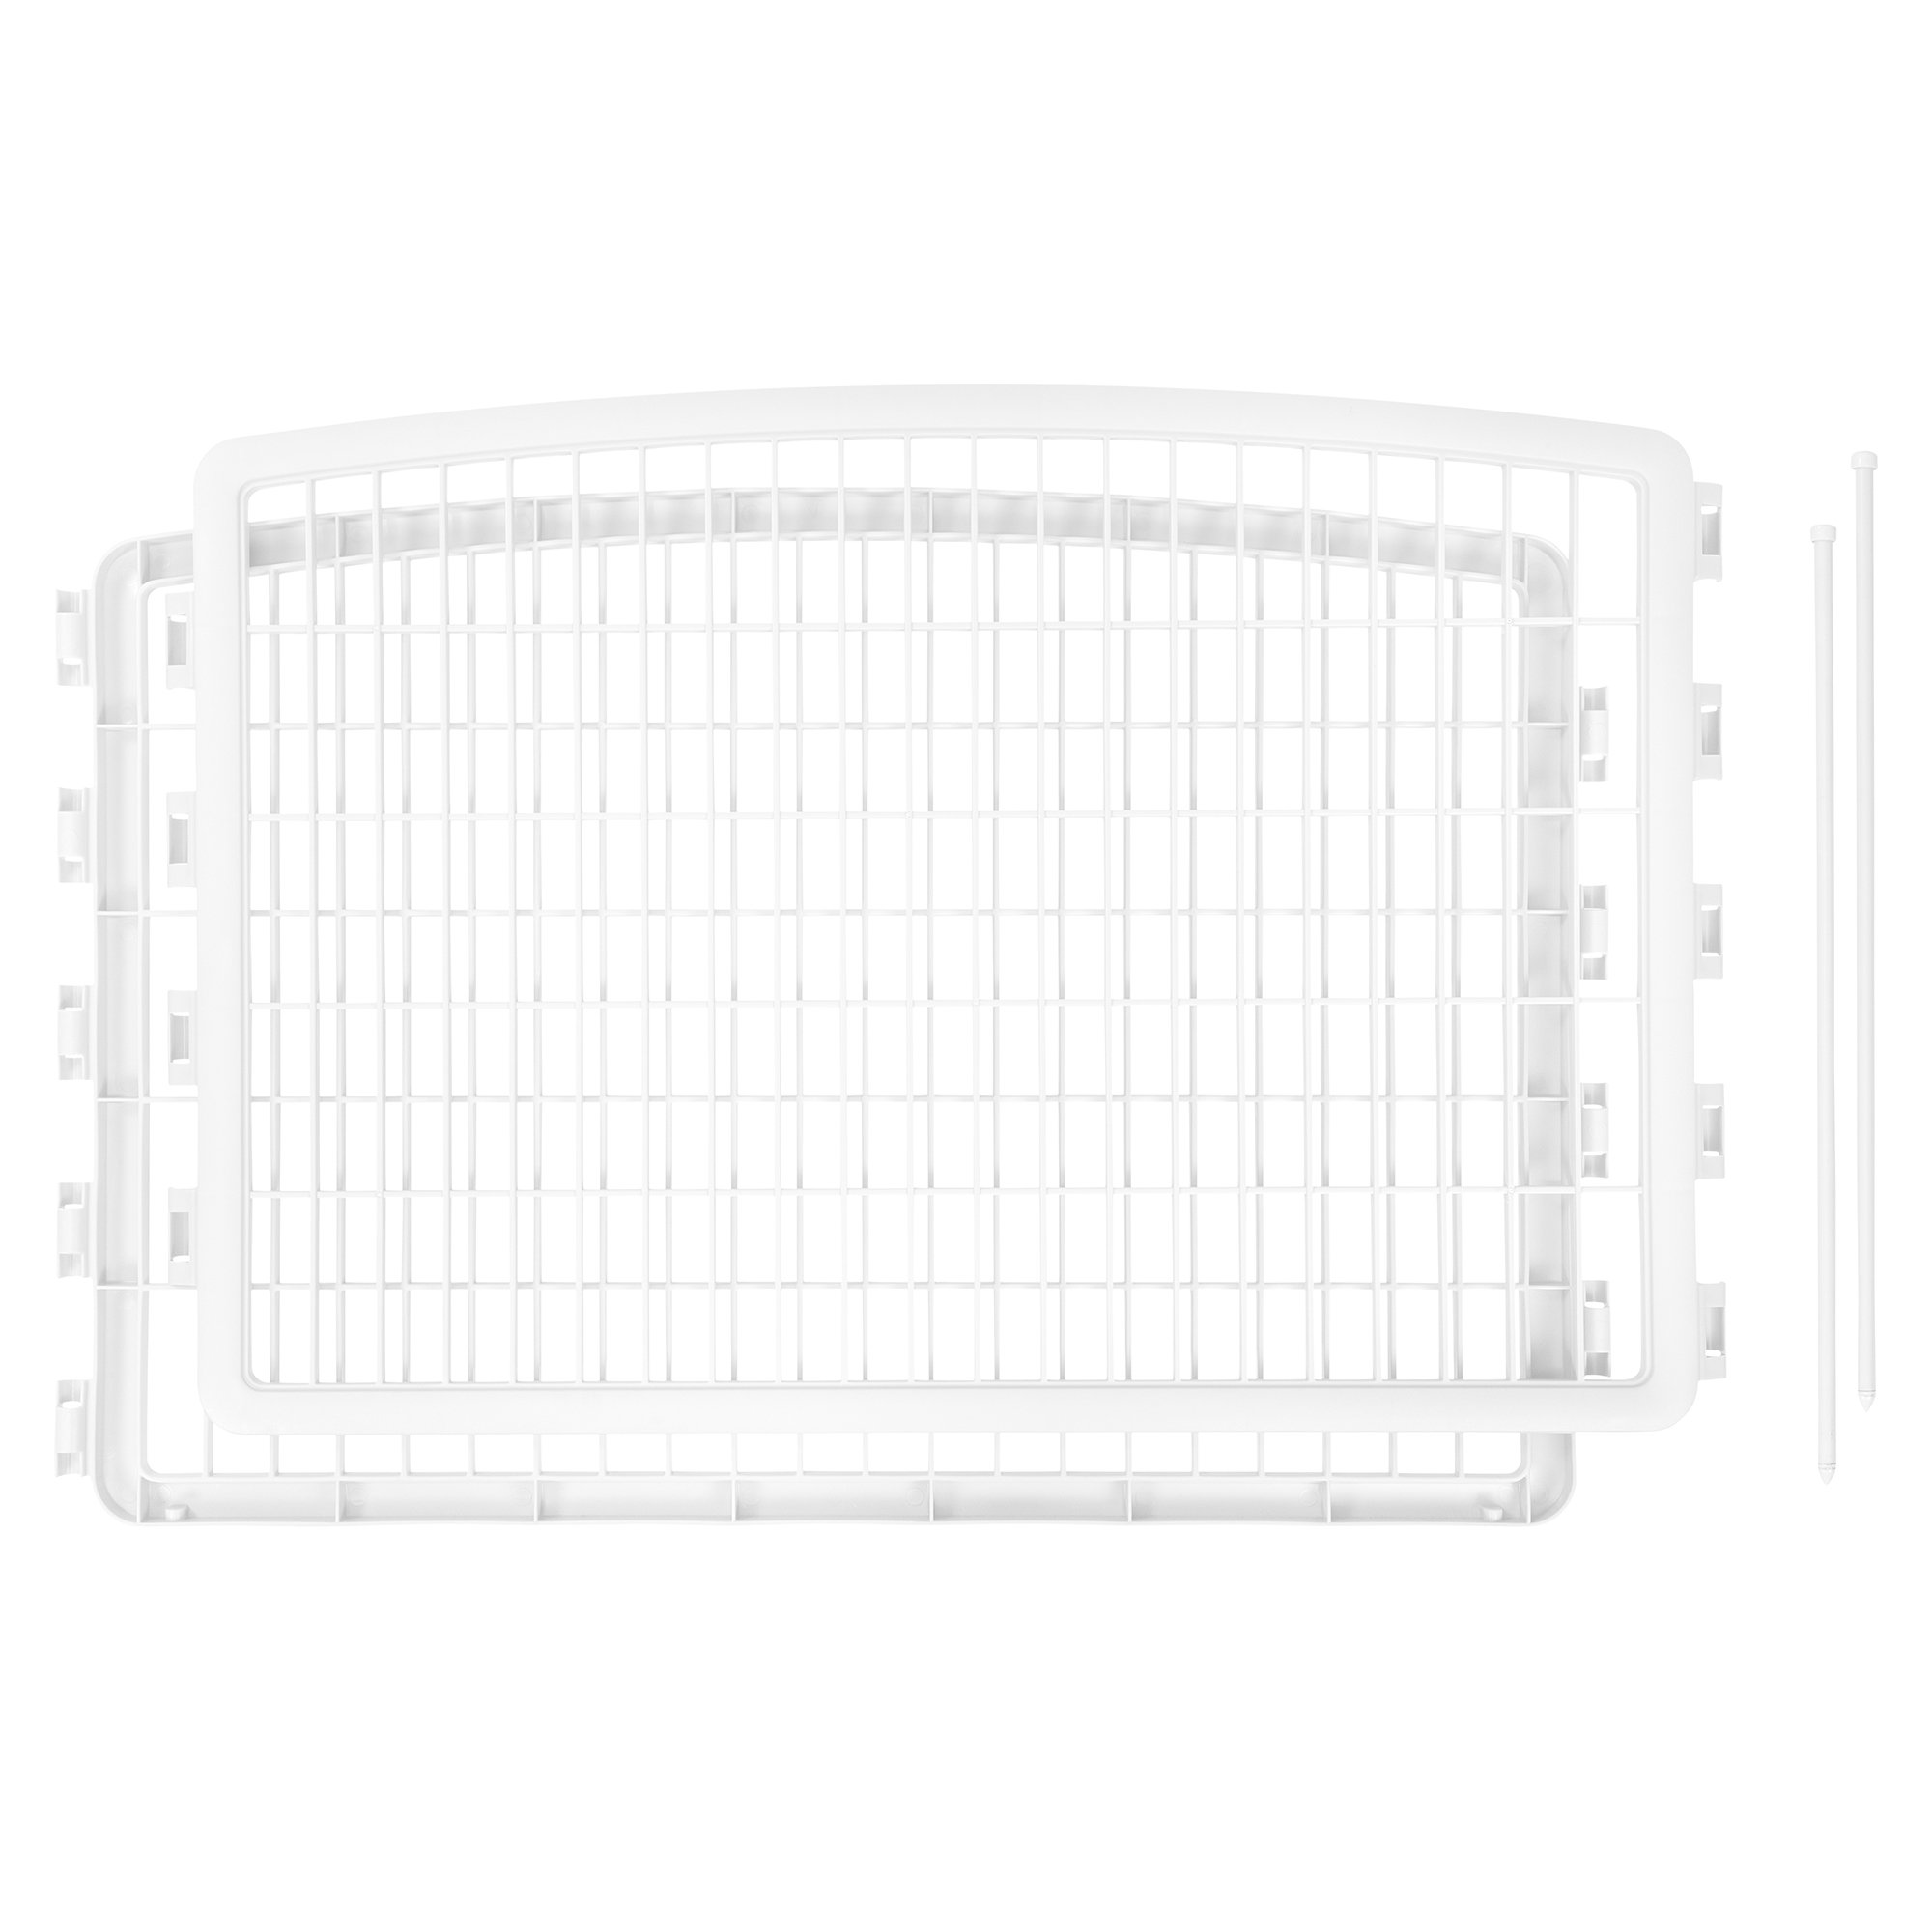 Iris White Two Panel Add On for Four Panel Containment and Exercise Pet Pen